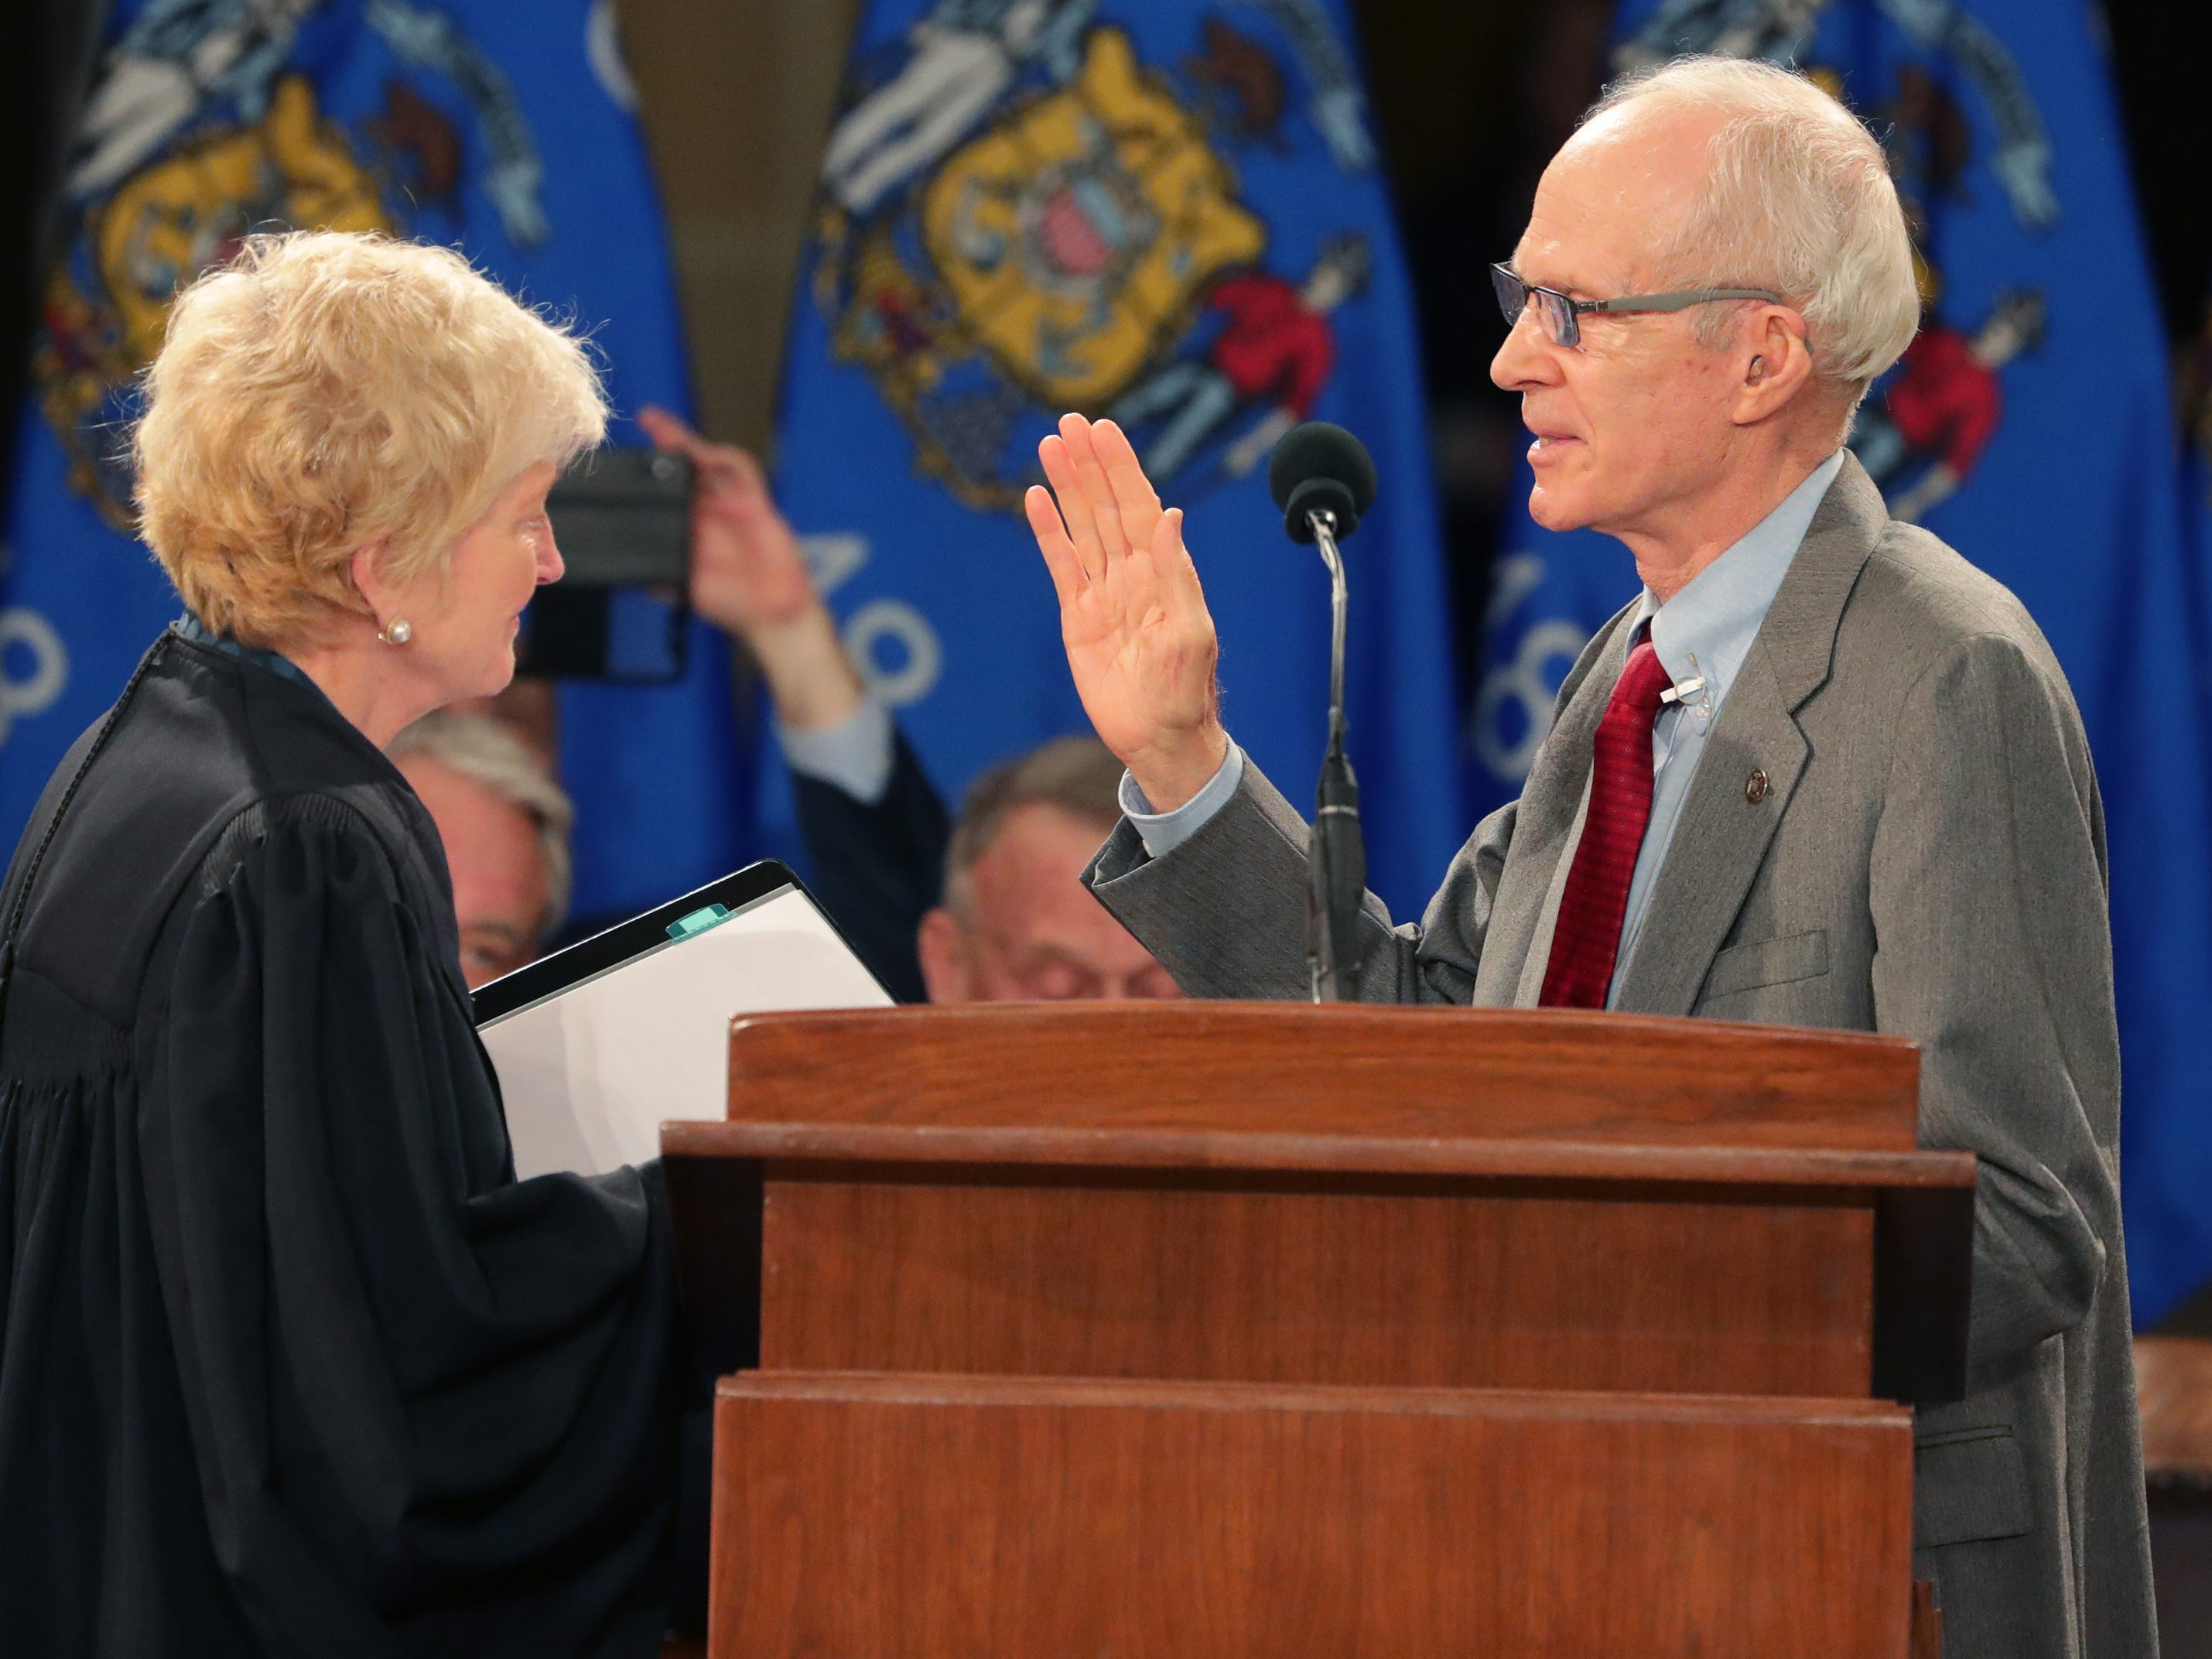 Chief Justice Patience D. Roggensack (left) administers the oath of office to Secretary of State Douglas La Follette.